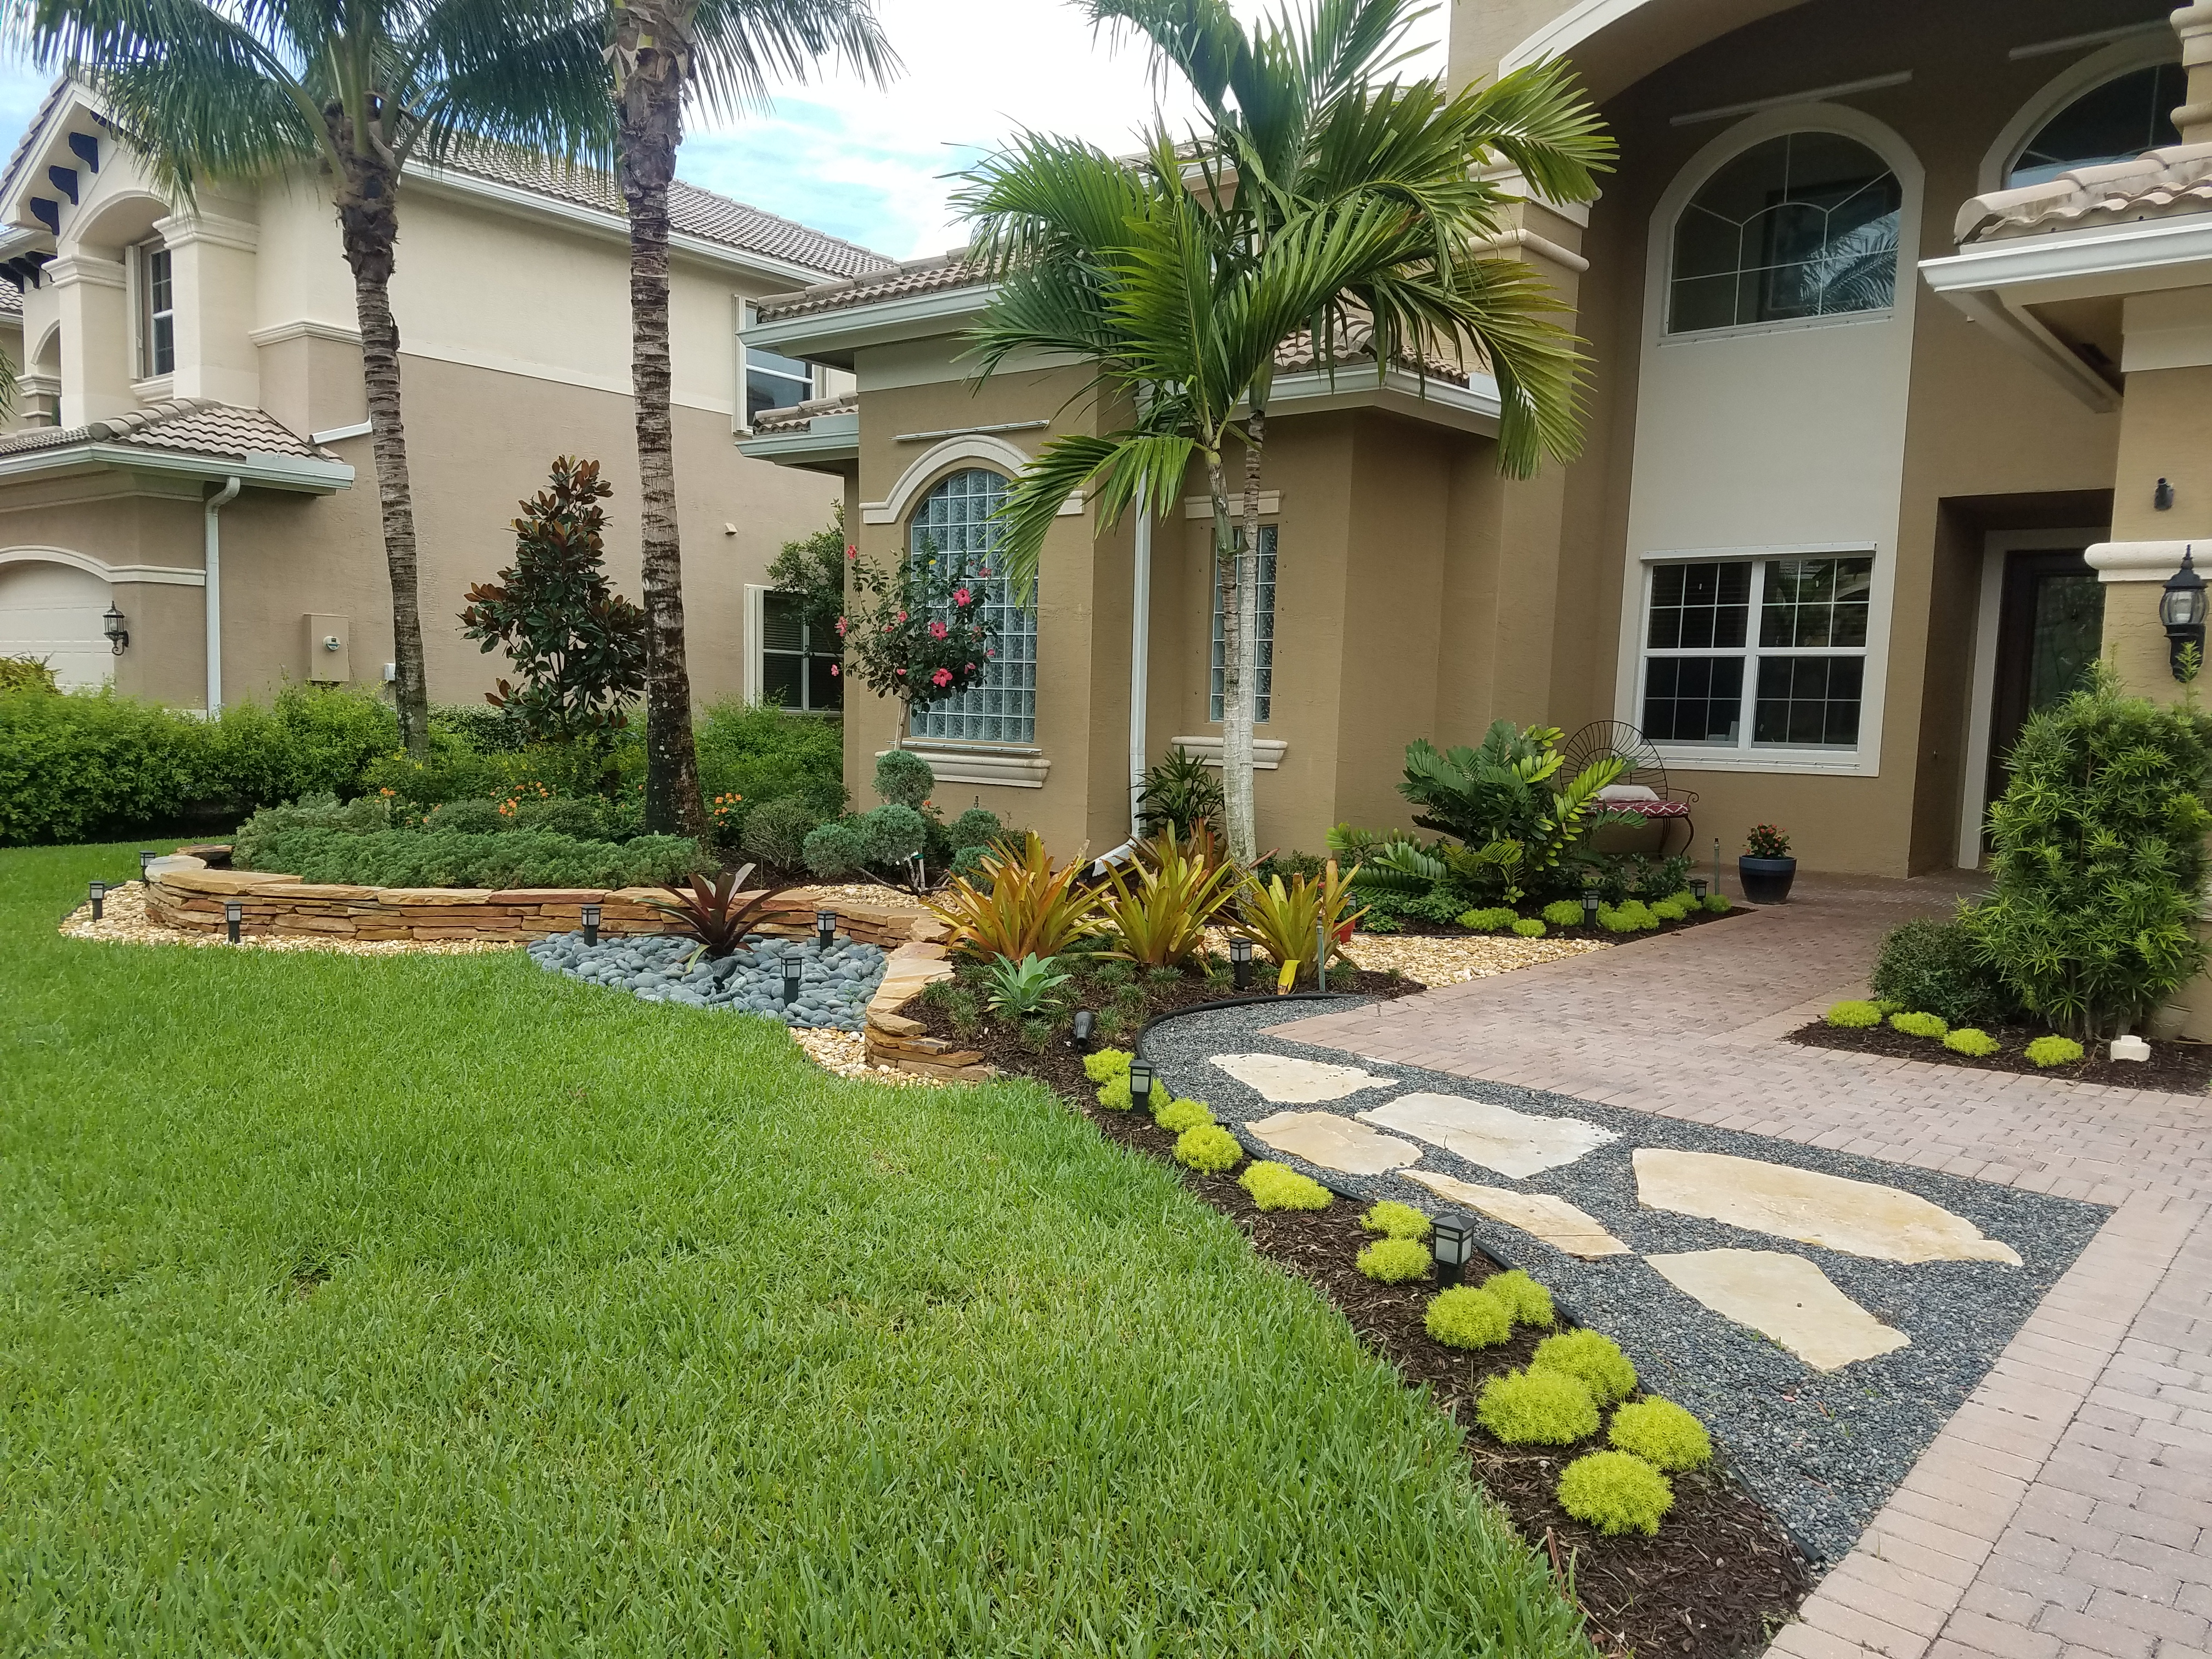 The Front Landscape Of This House With Decorative Stone Was Completely Re Done.  The Old Landscape, About 10 Years Old Was Removed In Hopes Of A Cleaner  Look ...